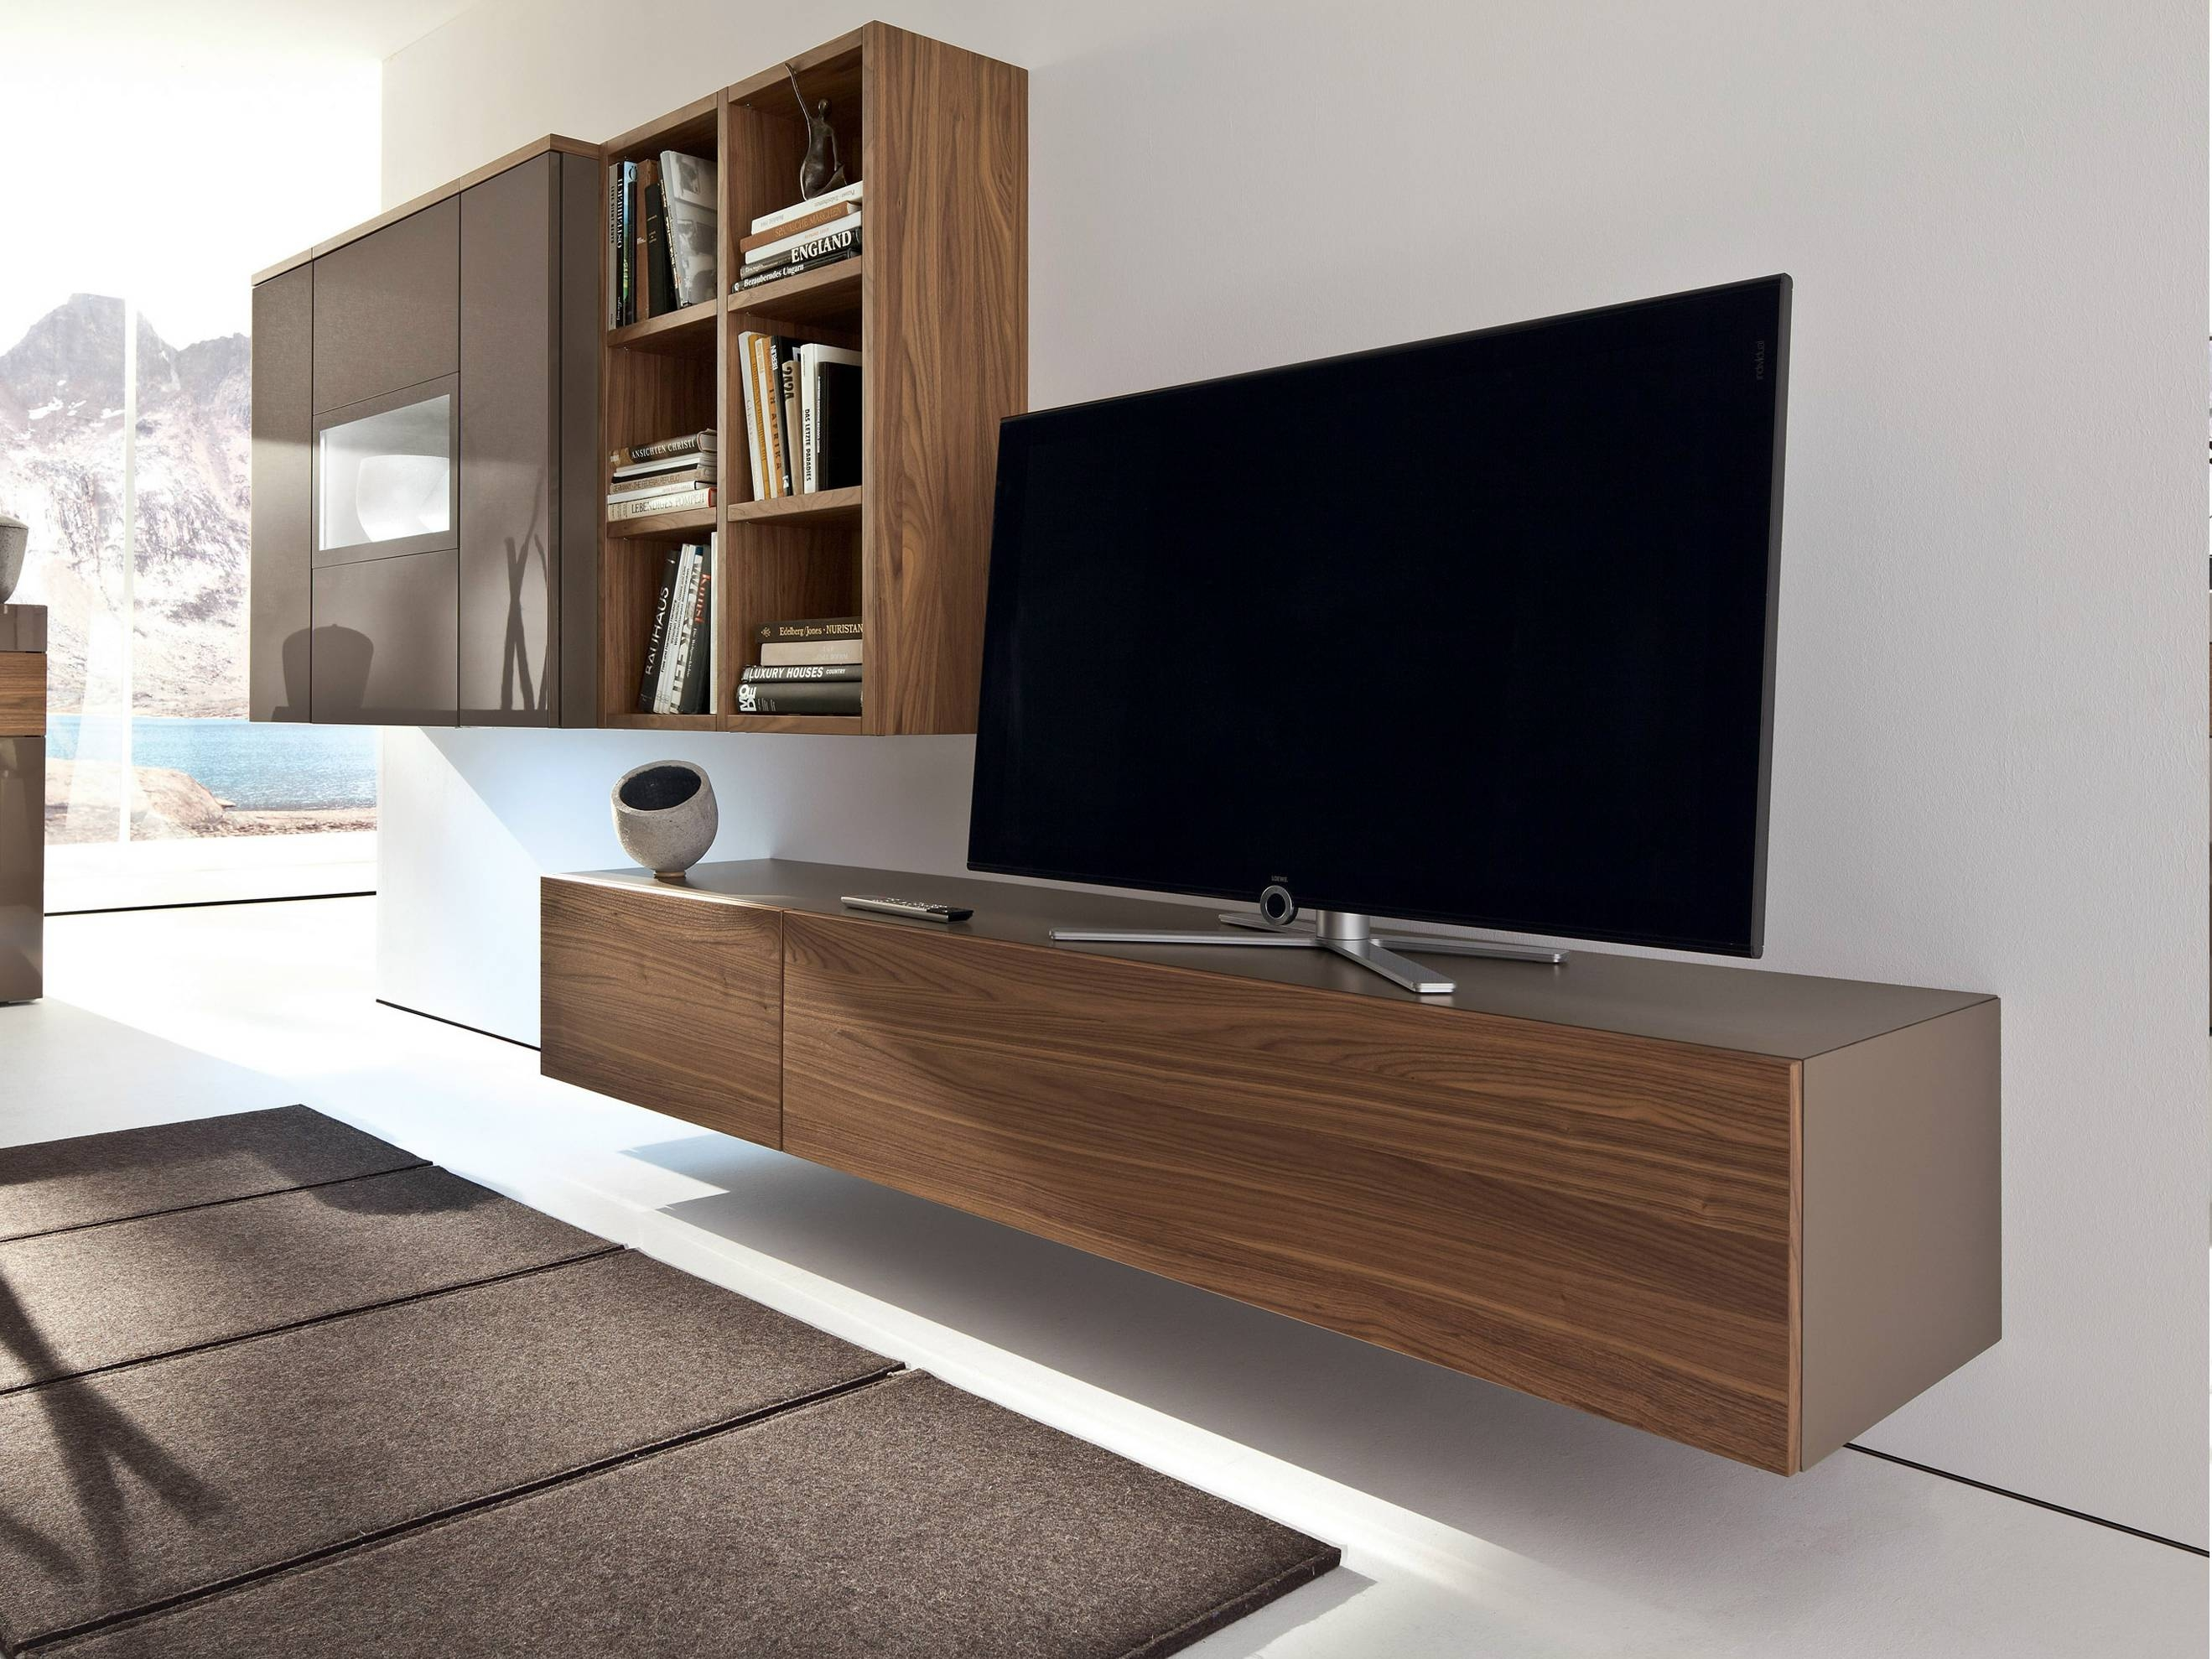 Bedroom : Modern Tv Units Tv Wall Design Wooden Tv Table Tv Stand regarding Modern Wall Mount Tv Stands (Image 2 of 15)